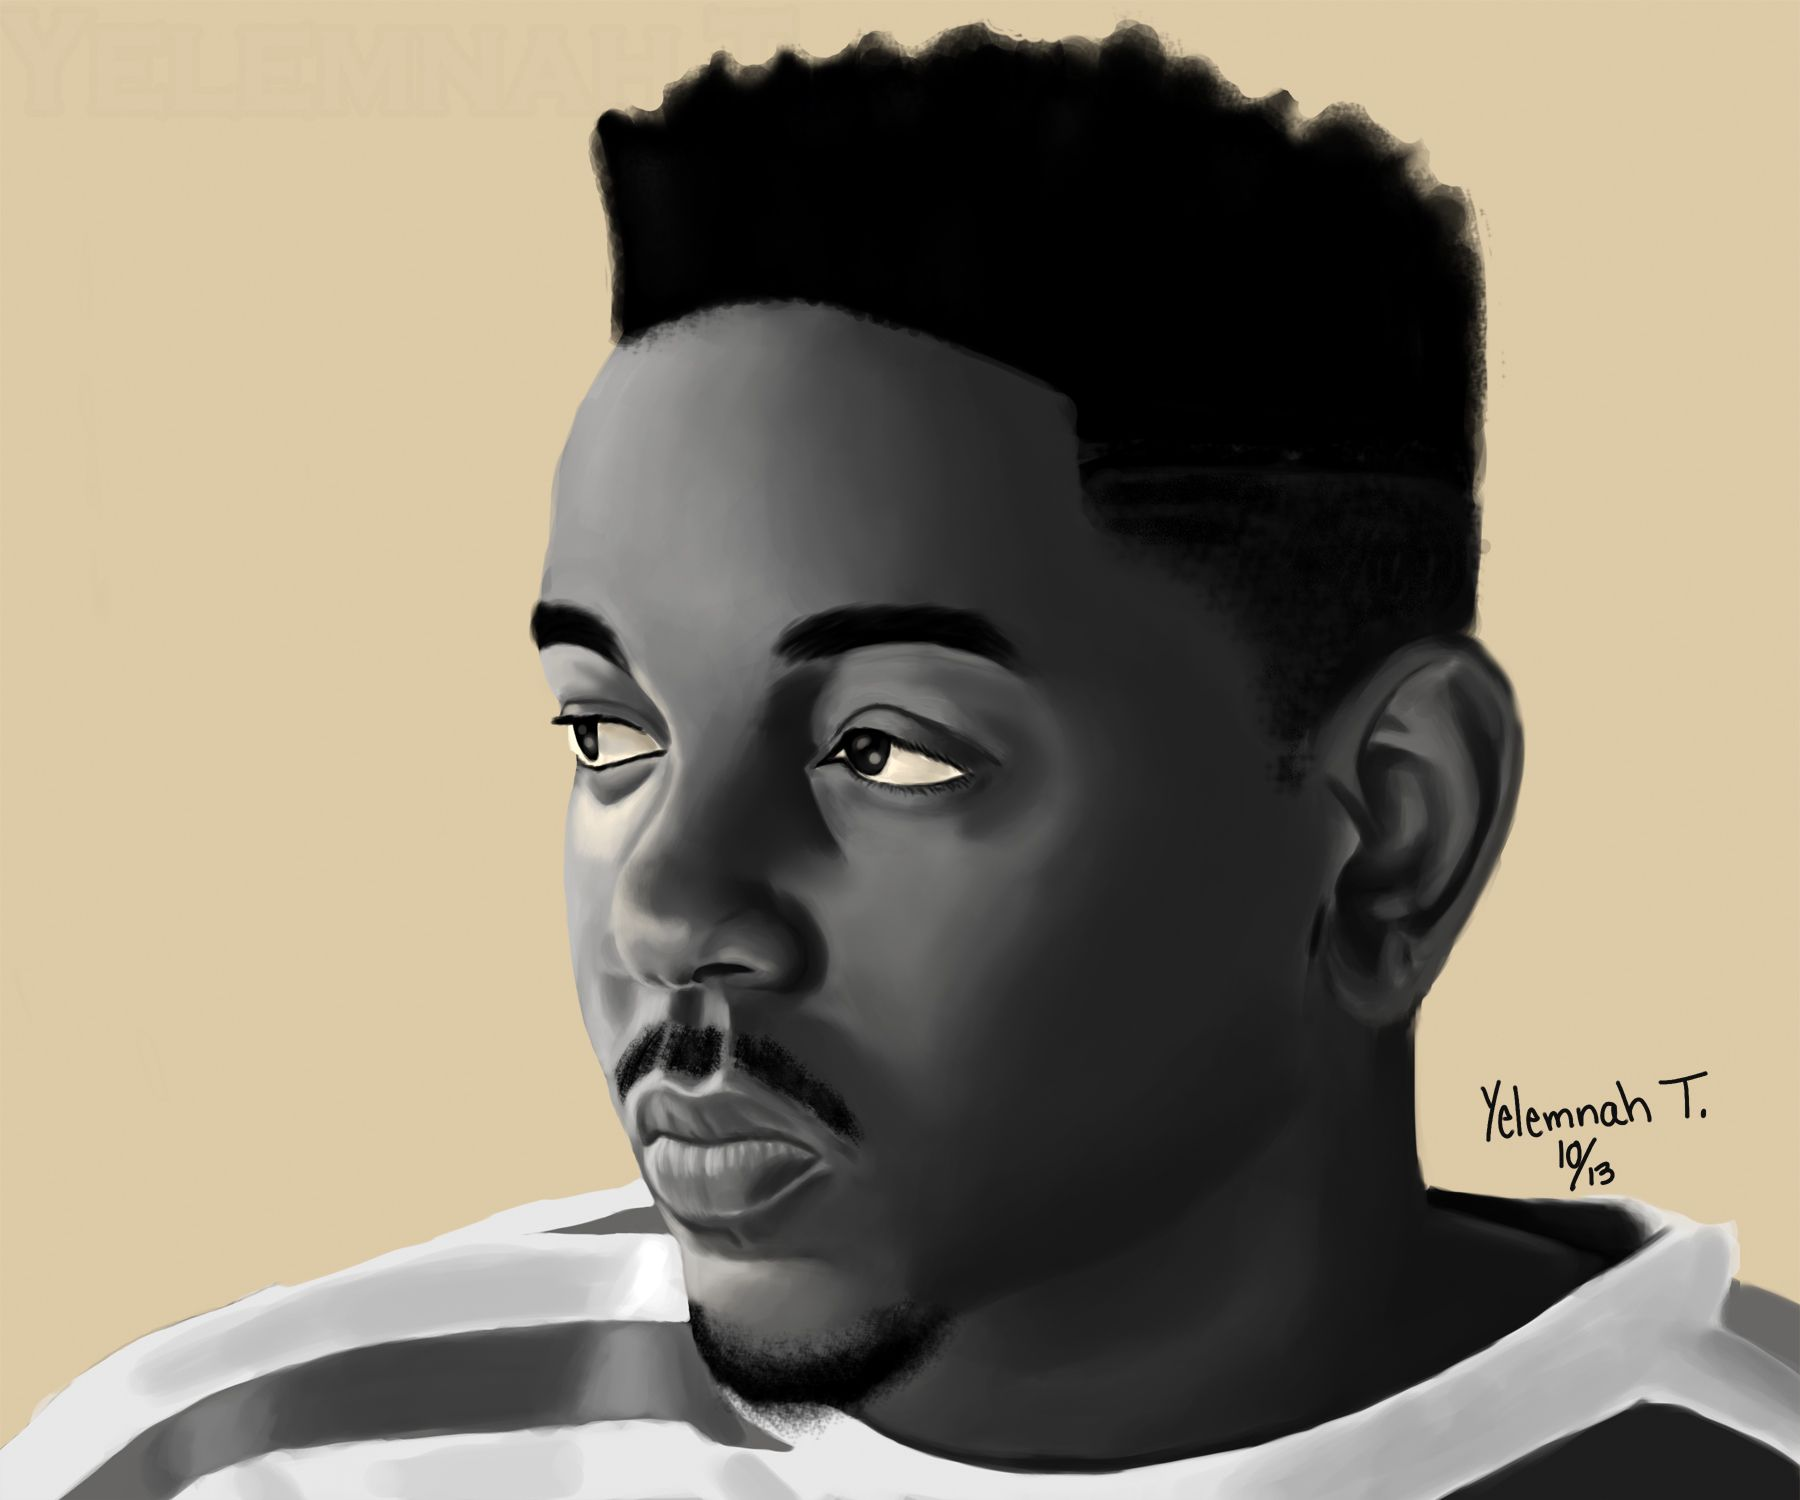 Kendrick Lamar by Yelemnah Tessema, Digital,  28 x  22 in.,  2013